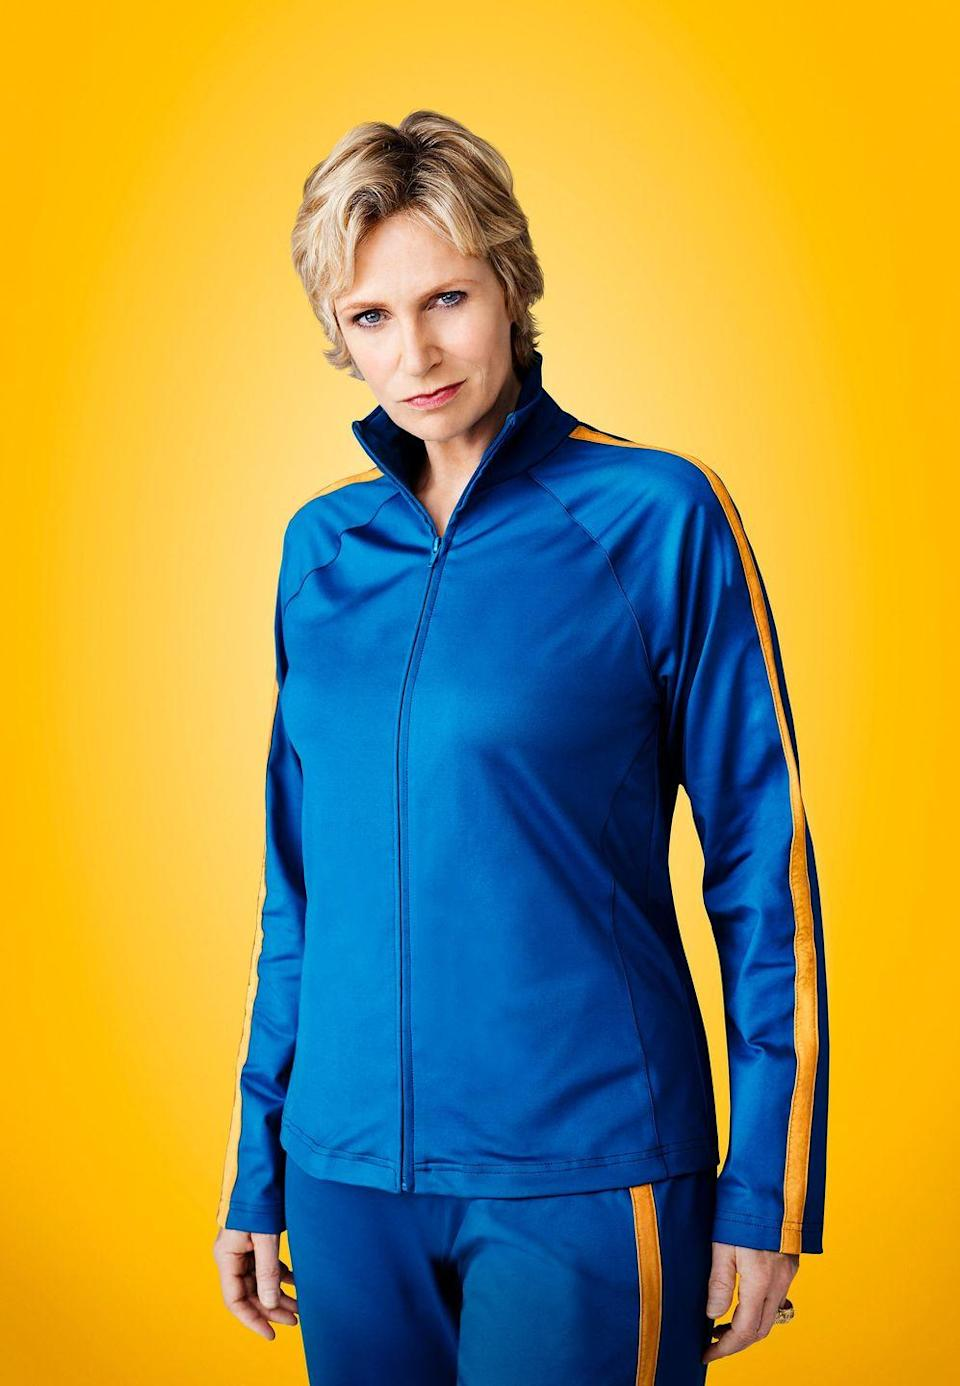 """<p>While playing <em>Glee'</em>s villain, Sue Sylvester, Jane Lynch found herself in a different tracksuit every episode. """"I have about 20 now and they are always making more. The wardrobe stylist would come up to me and ask 'What about this color tracksuit with this piping?' And I say either yes or no,"""" Lynch told <a href=""""https://www.metro.us/the-tracksuit-makes-the-woman-for-jane-lynch/"""" rel=""""nofollow noopener"""" target=""""_blank"""" data-ylk=""""slk:Metro"""" class=""""link rapid-noclick-resp"""">Metro</a> in 2010. """"We have two styles, the one with the high neck and then the crew neck with the zips and they make them fit to me.""""</p>"""